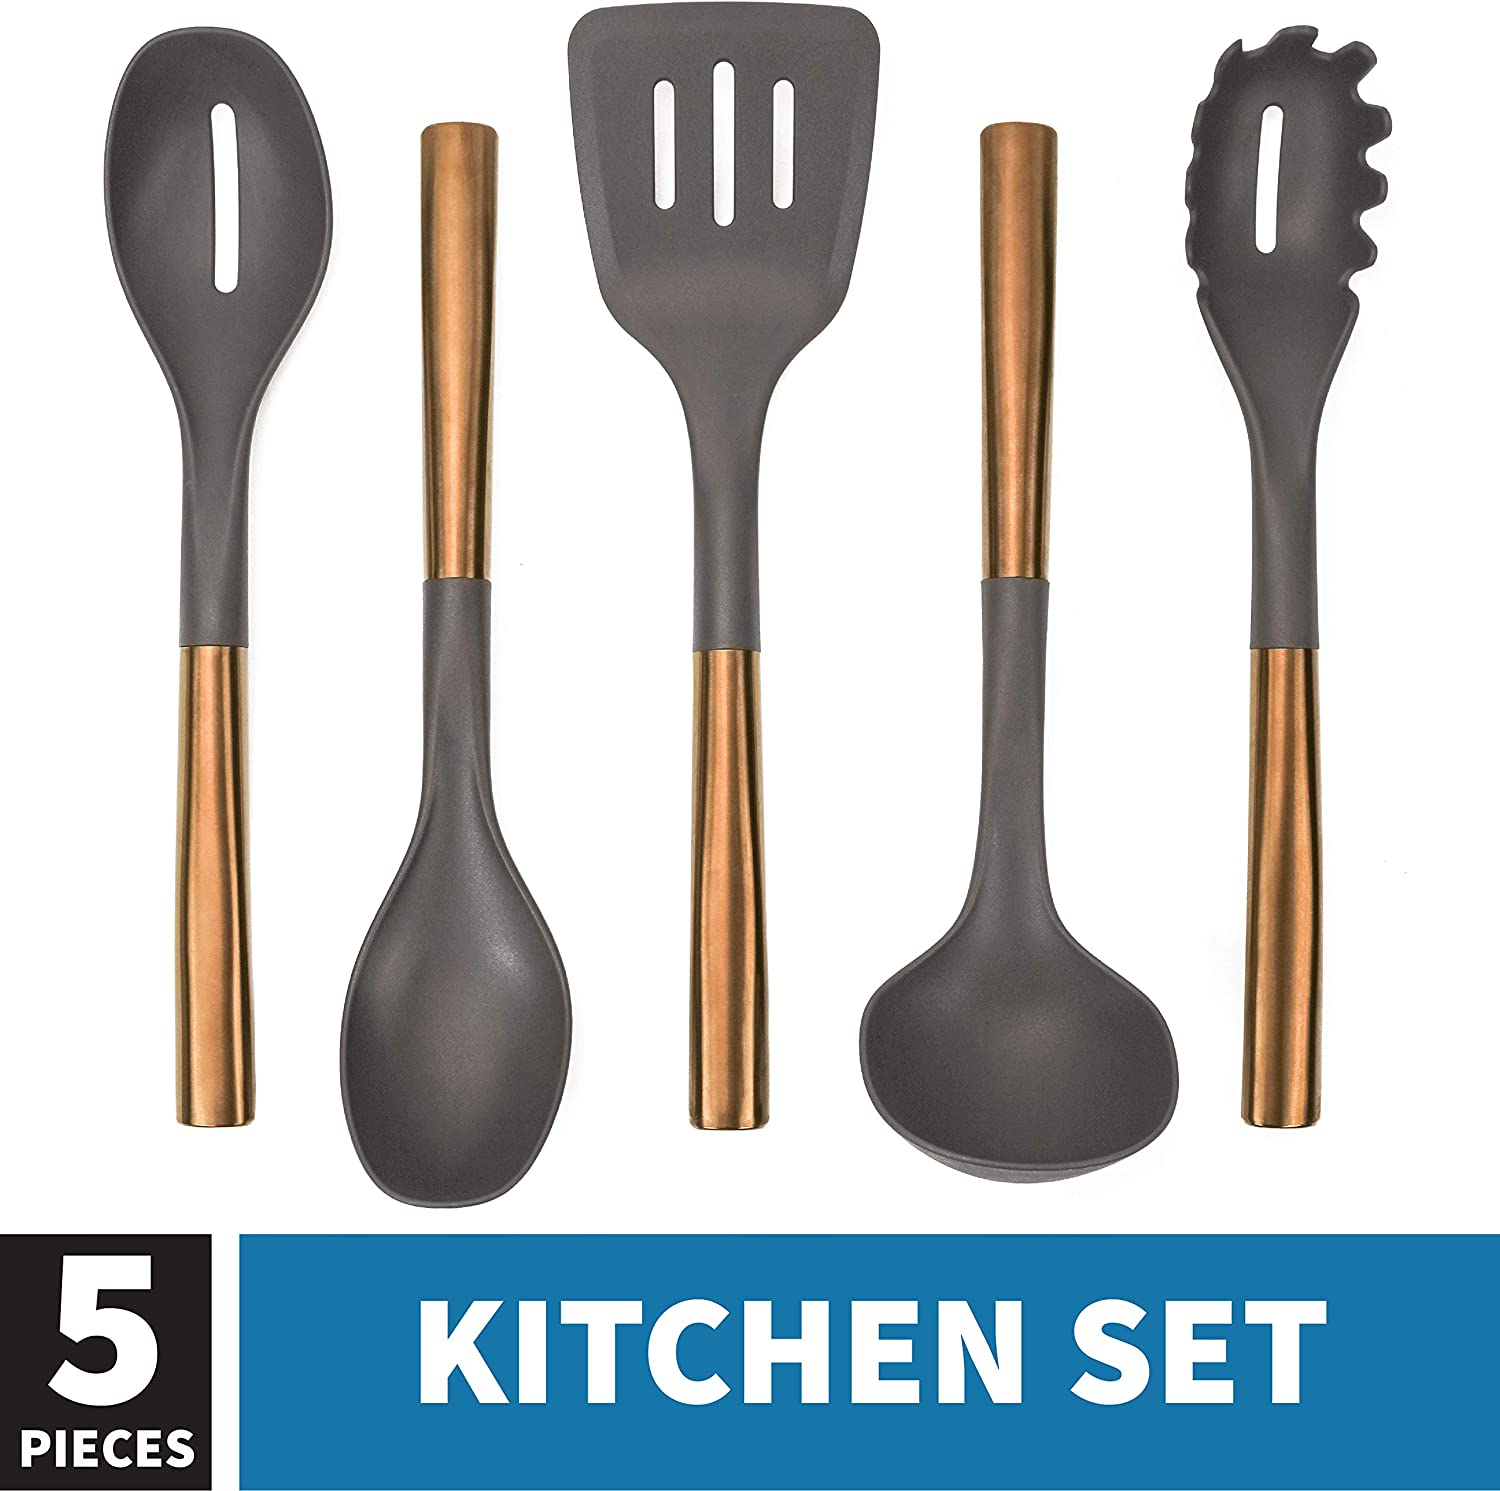 536201 Copper Plated Kitchen Set, Nylon Cooking Utensils for Chefs, Non-Stick Safe, 5 Piece